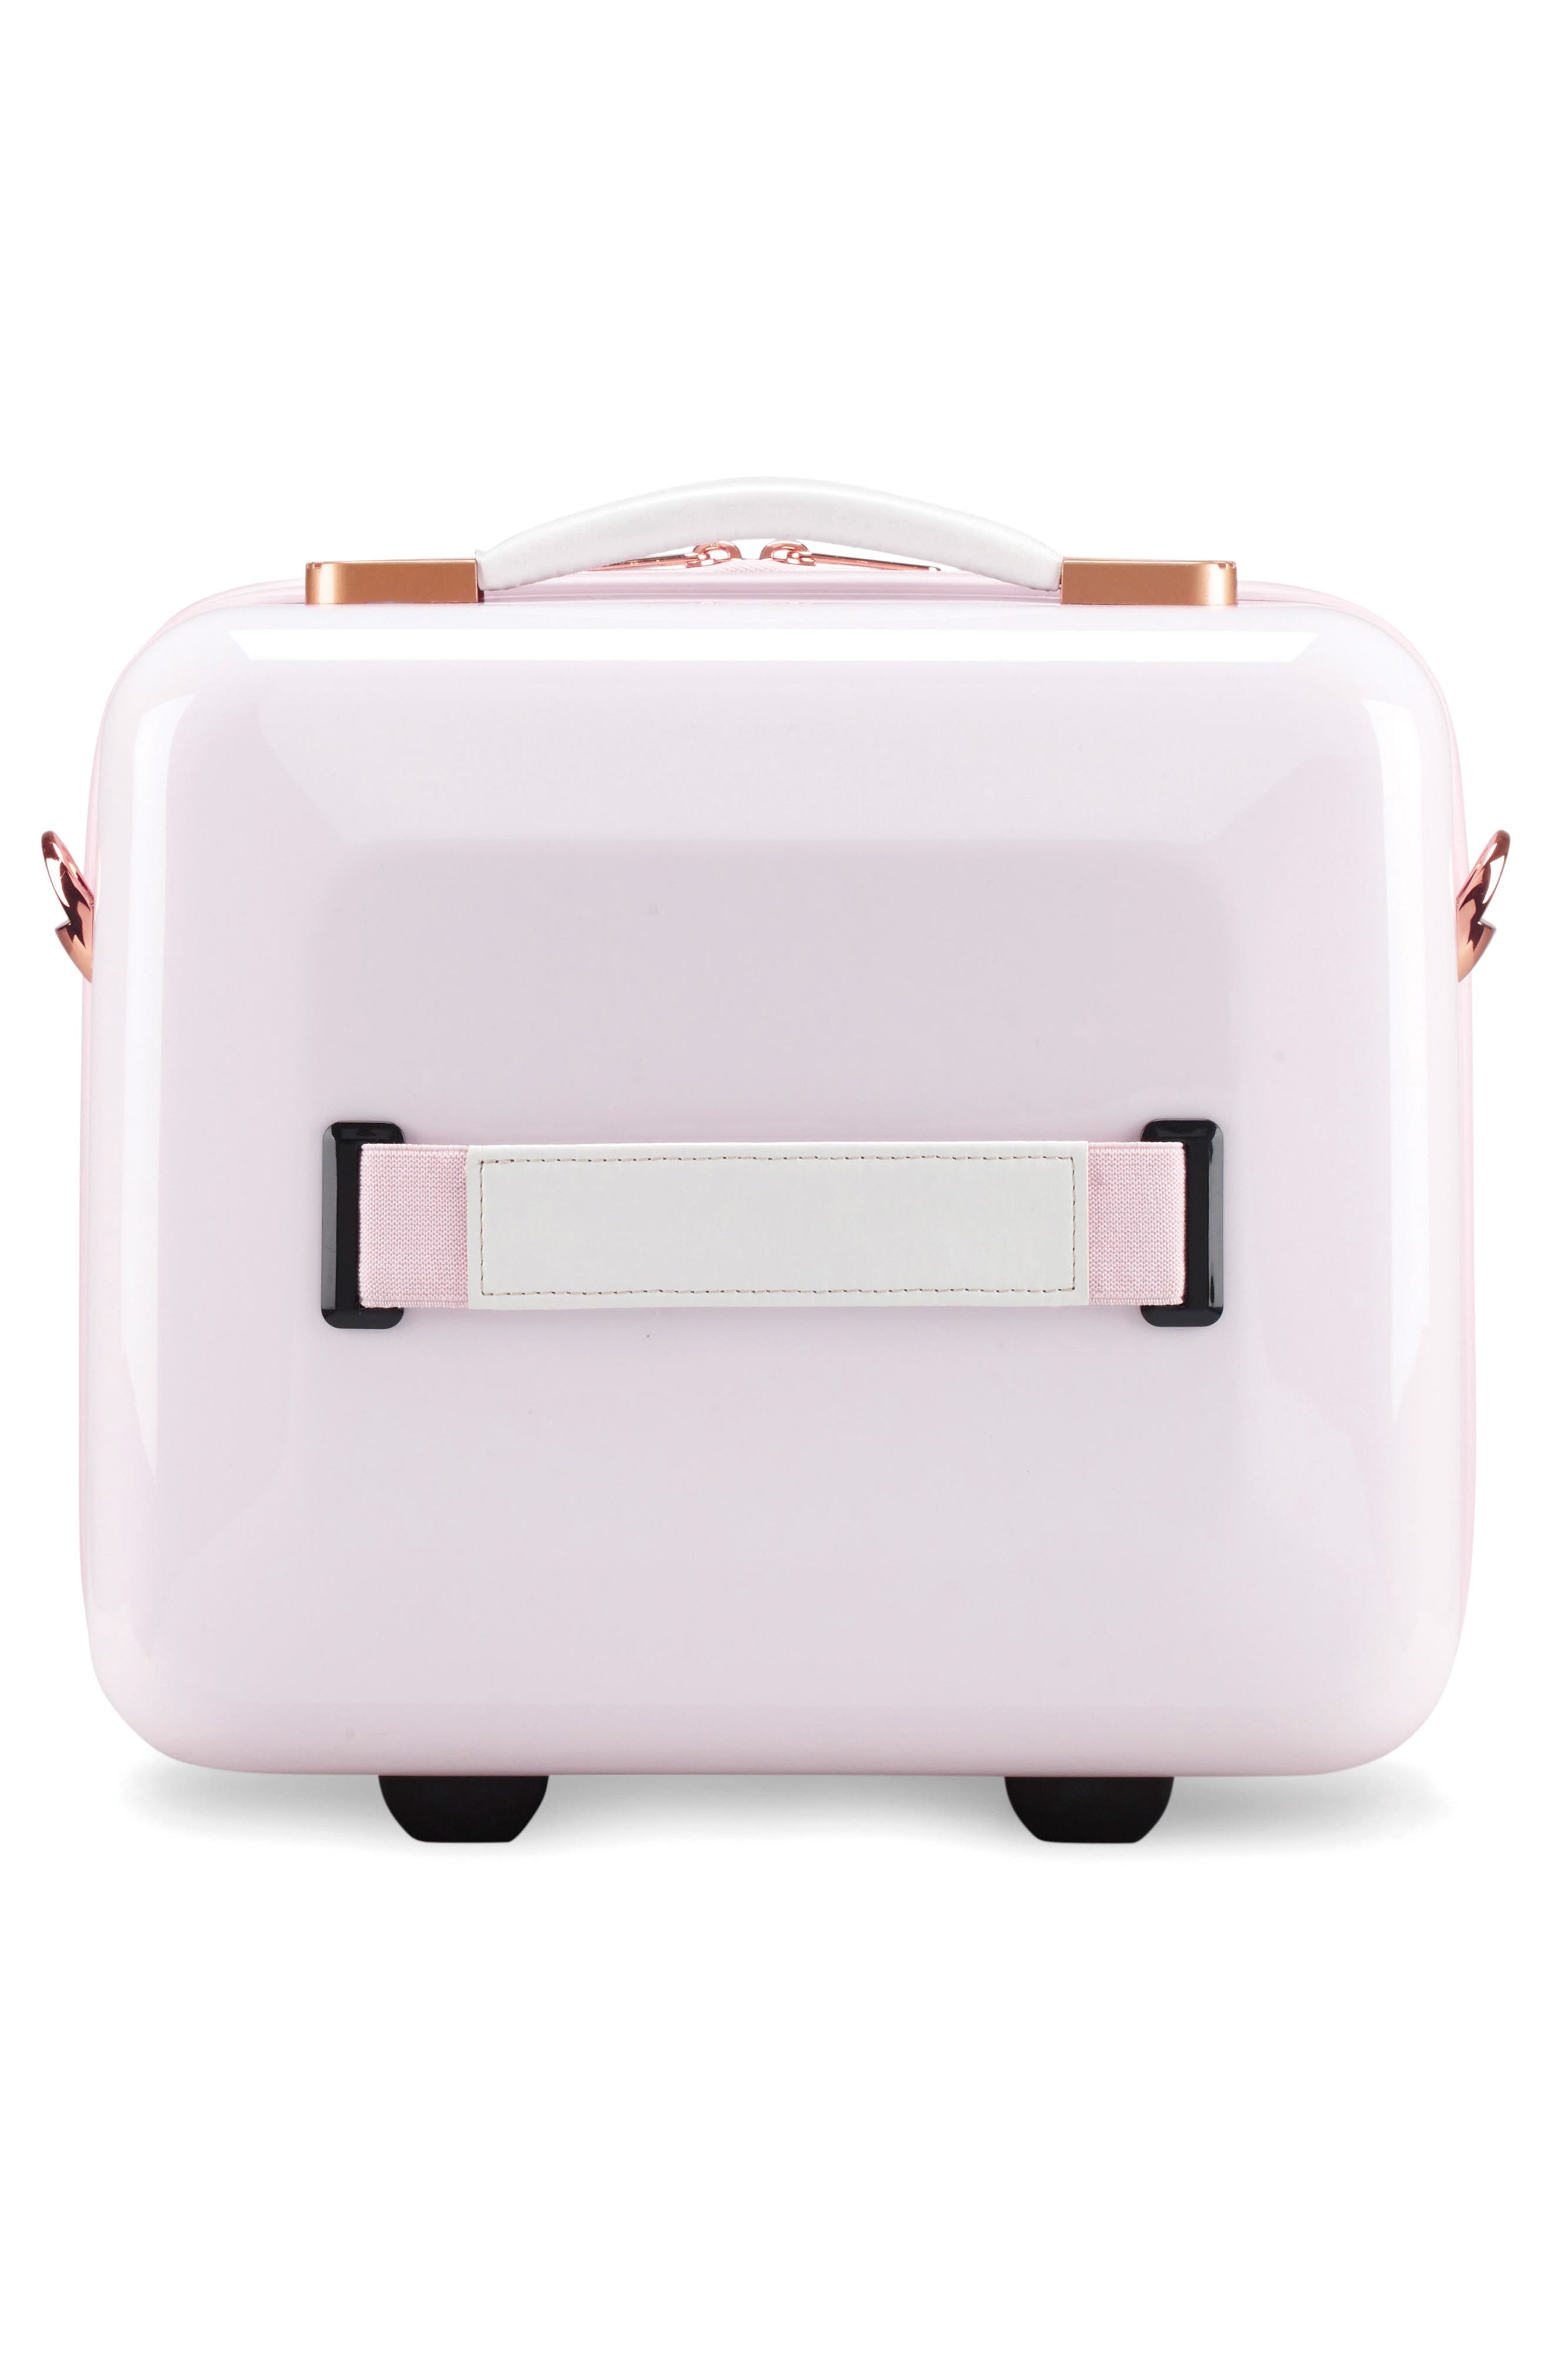 Blossoms Vanity Case,                             Alternate thumbnail 4, color,                             650